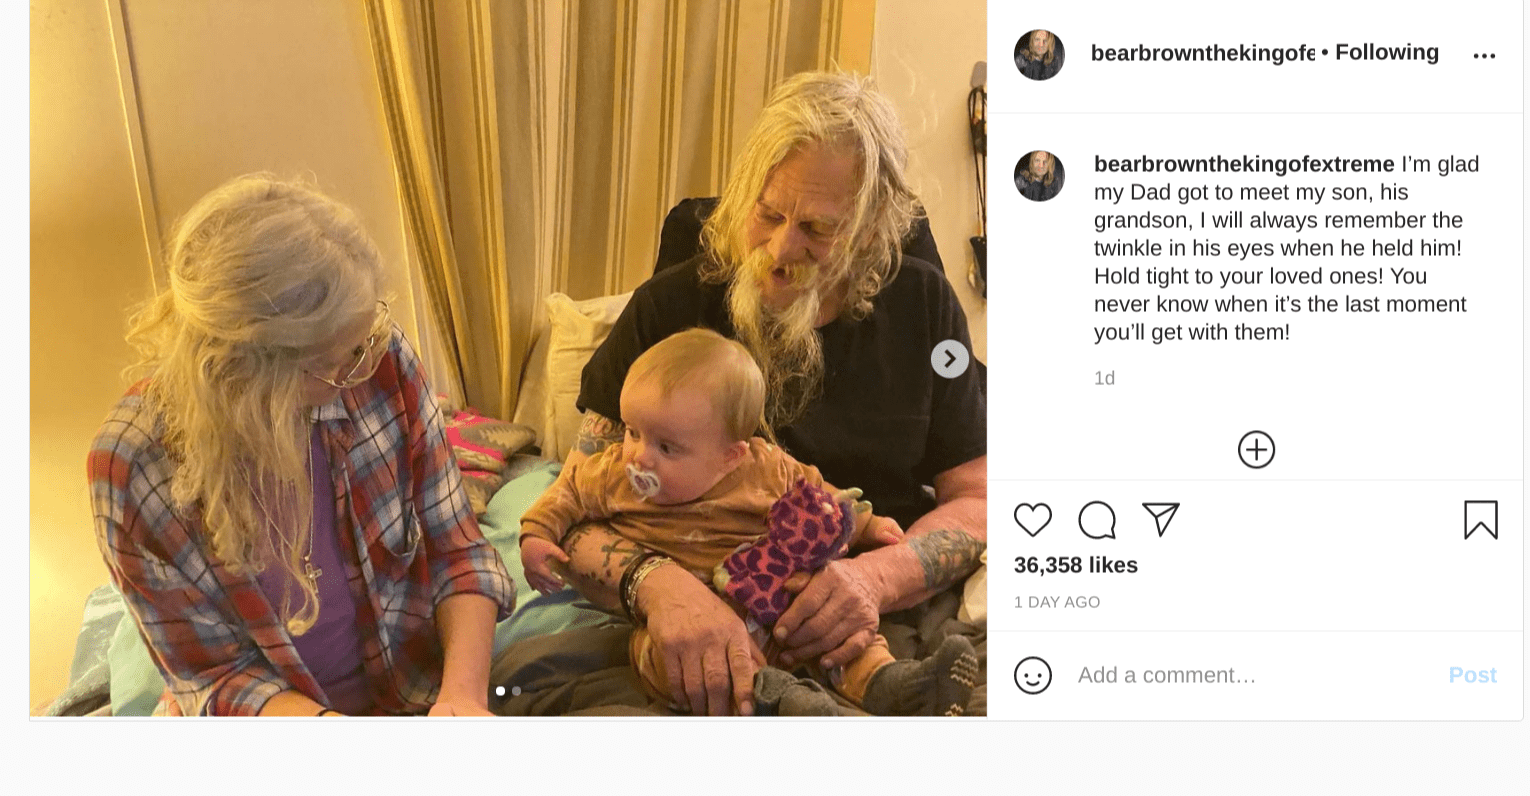 Bear Brown shared a loving tribute for his late dad, 2021. | Photo: Instagram/bearbrownthekingofextreme